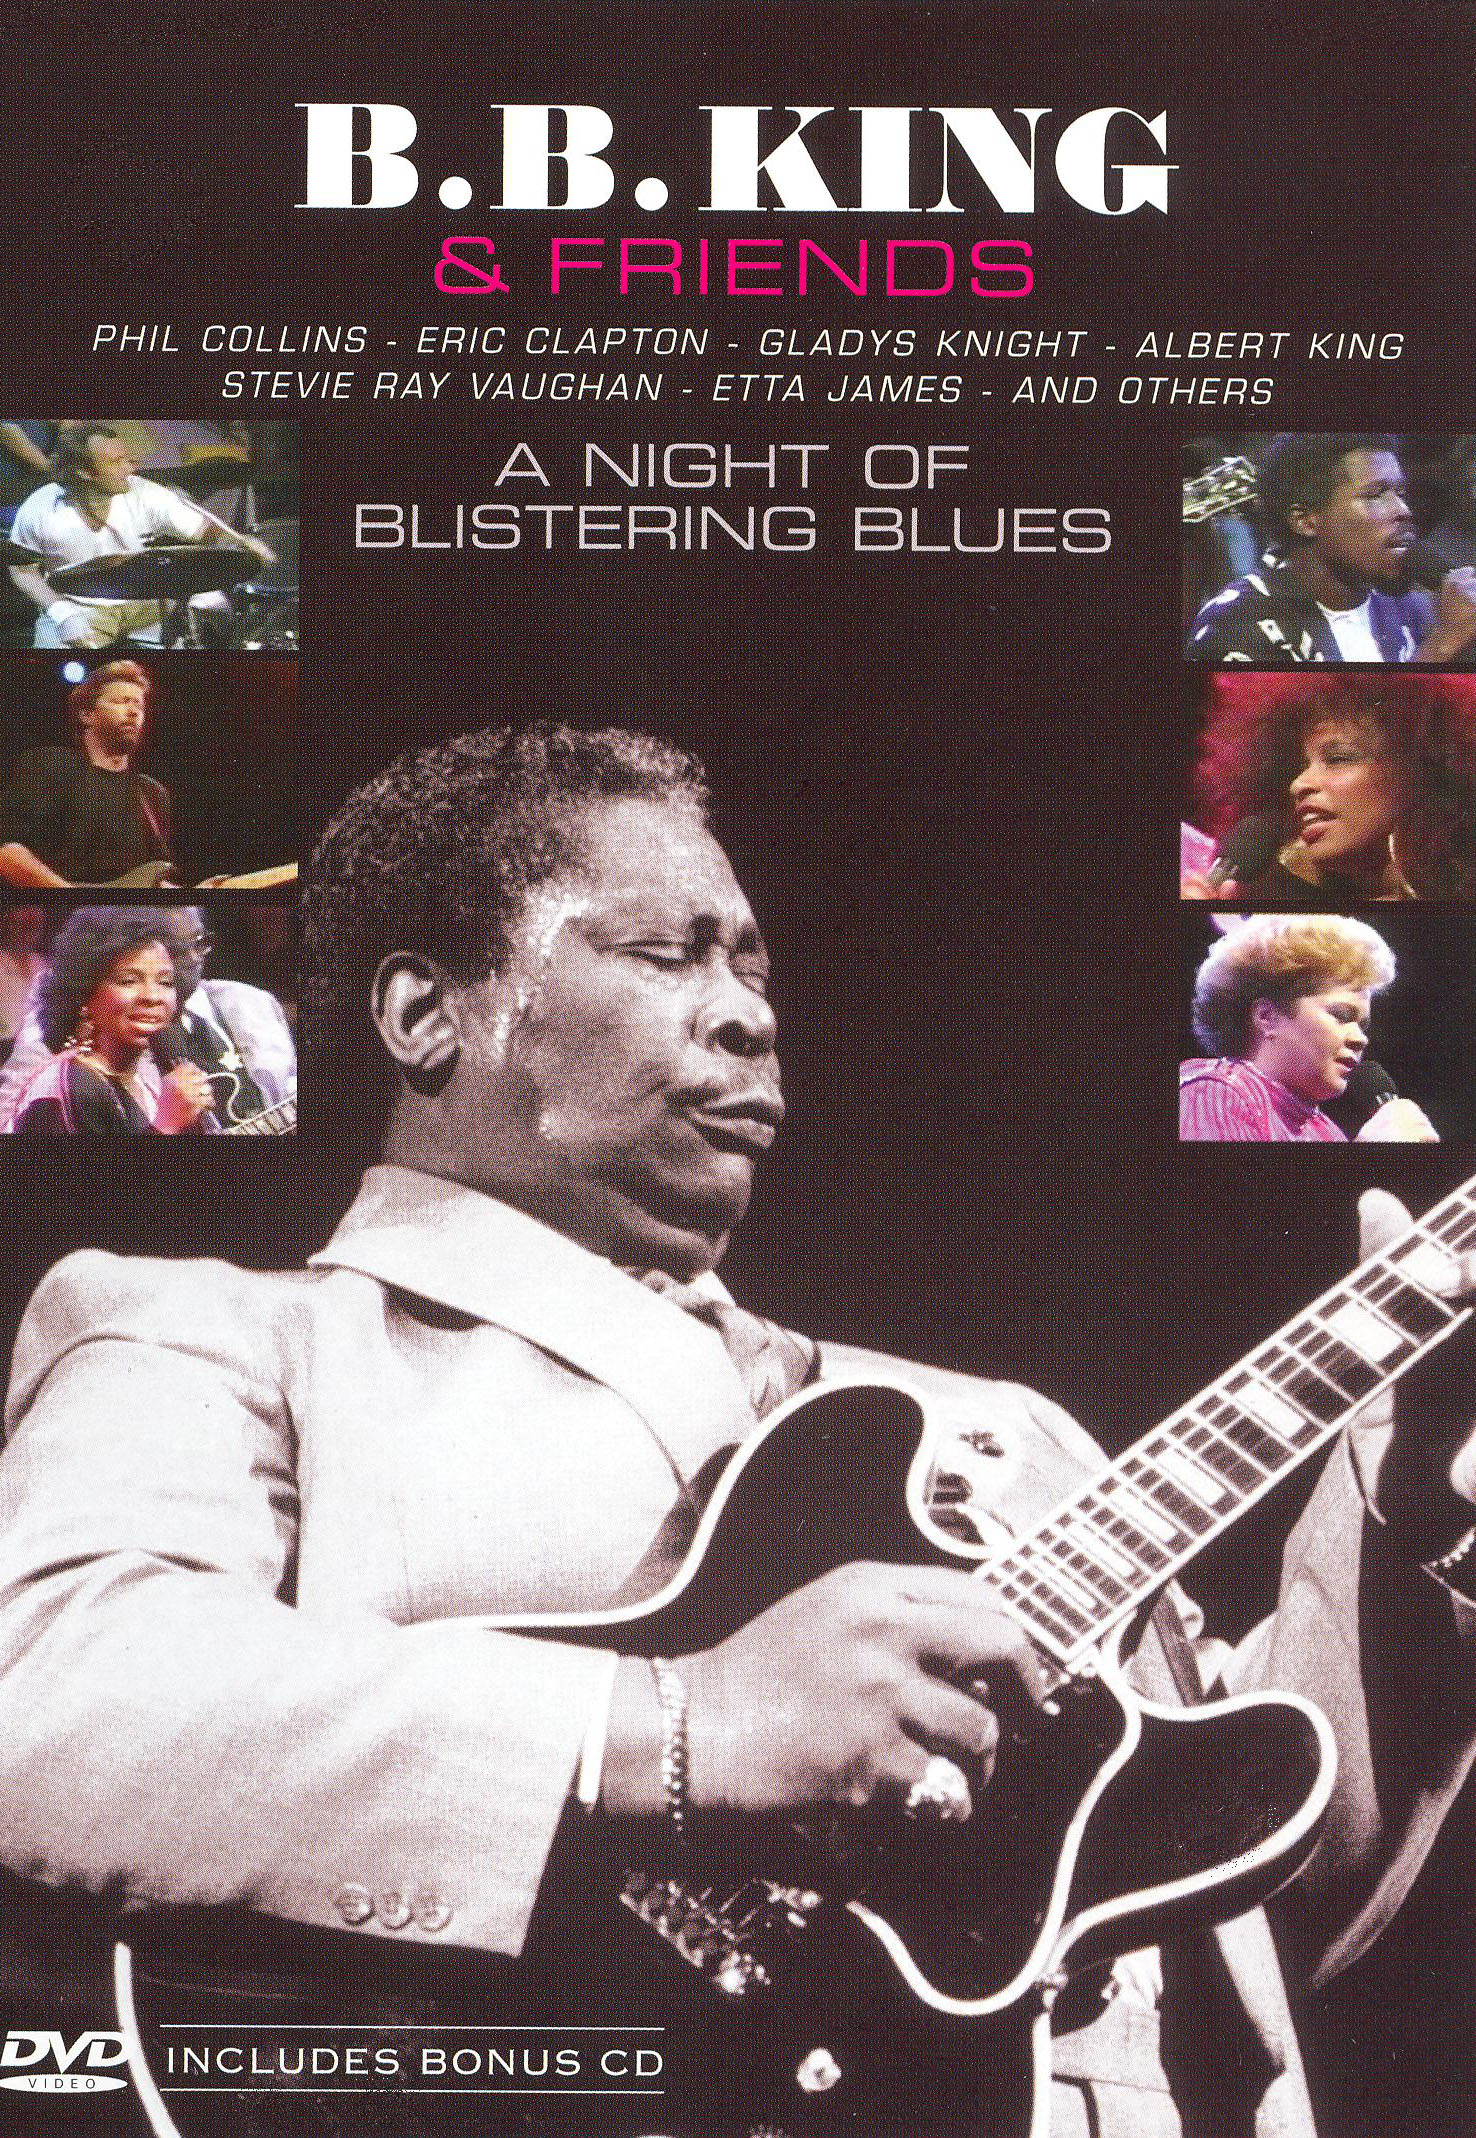 B.B. King and Friends: A Night of Blistering Blues